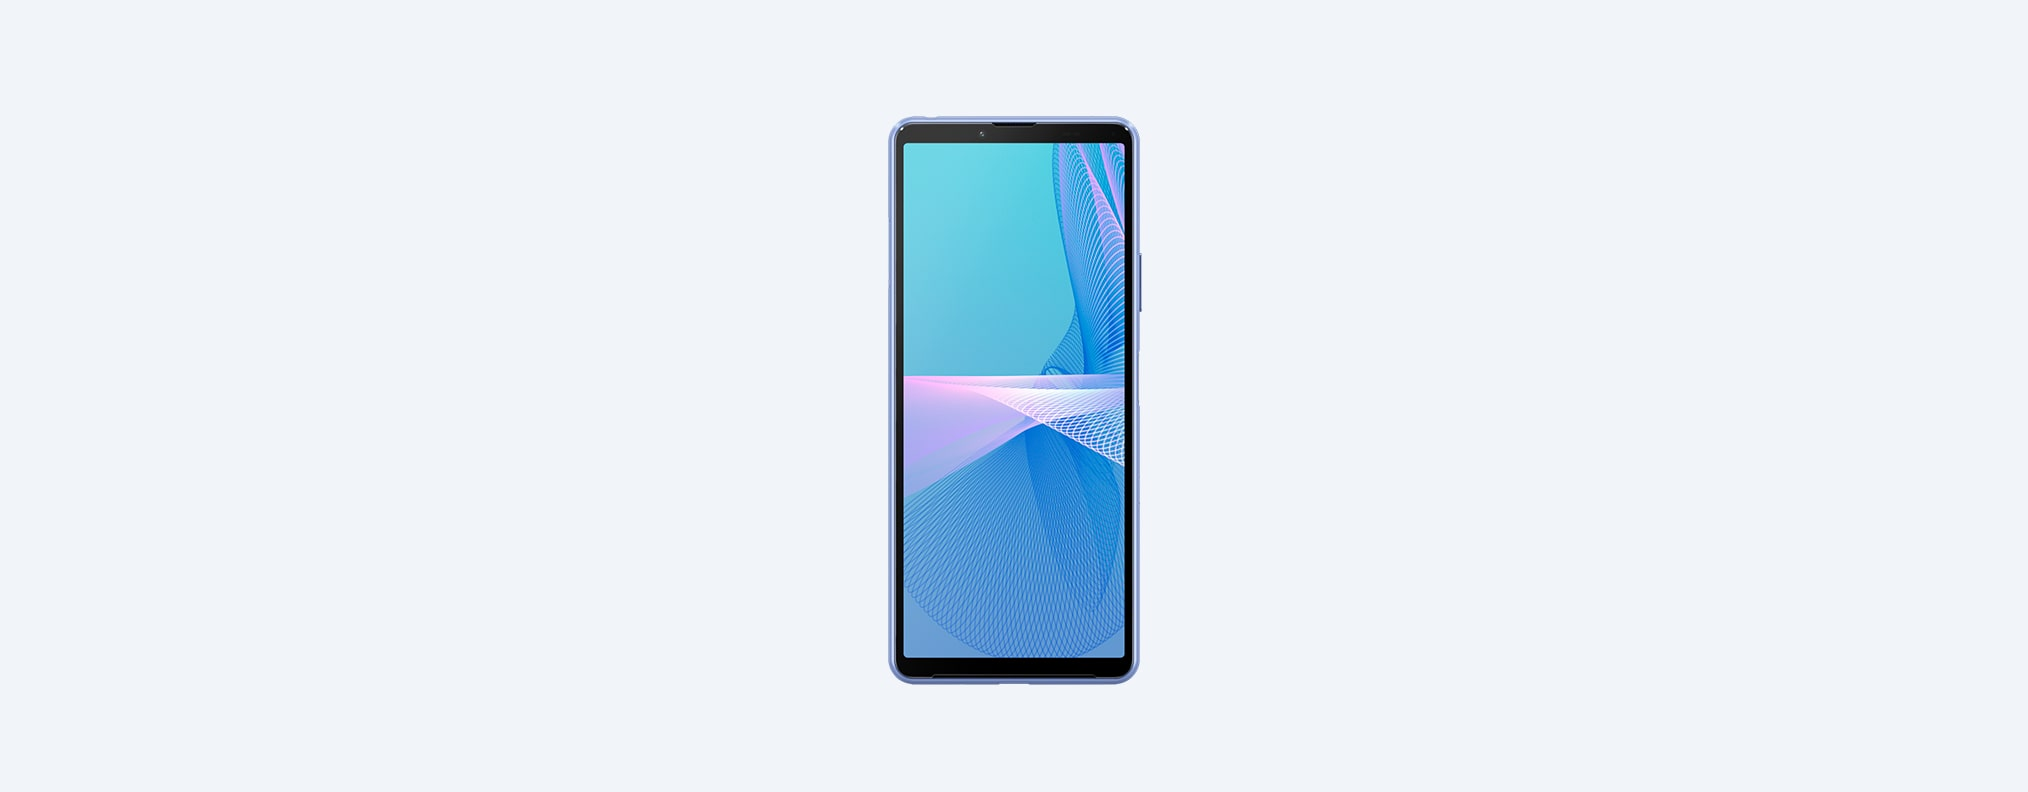 Xperia 10 III Blue Color